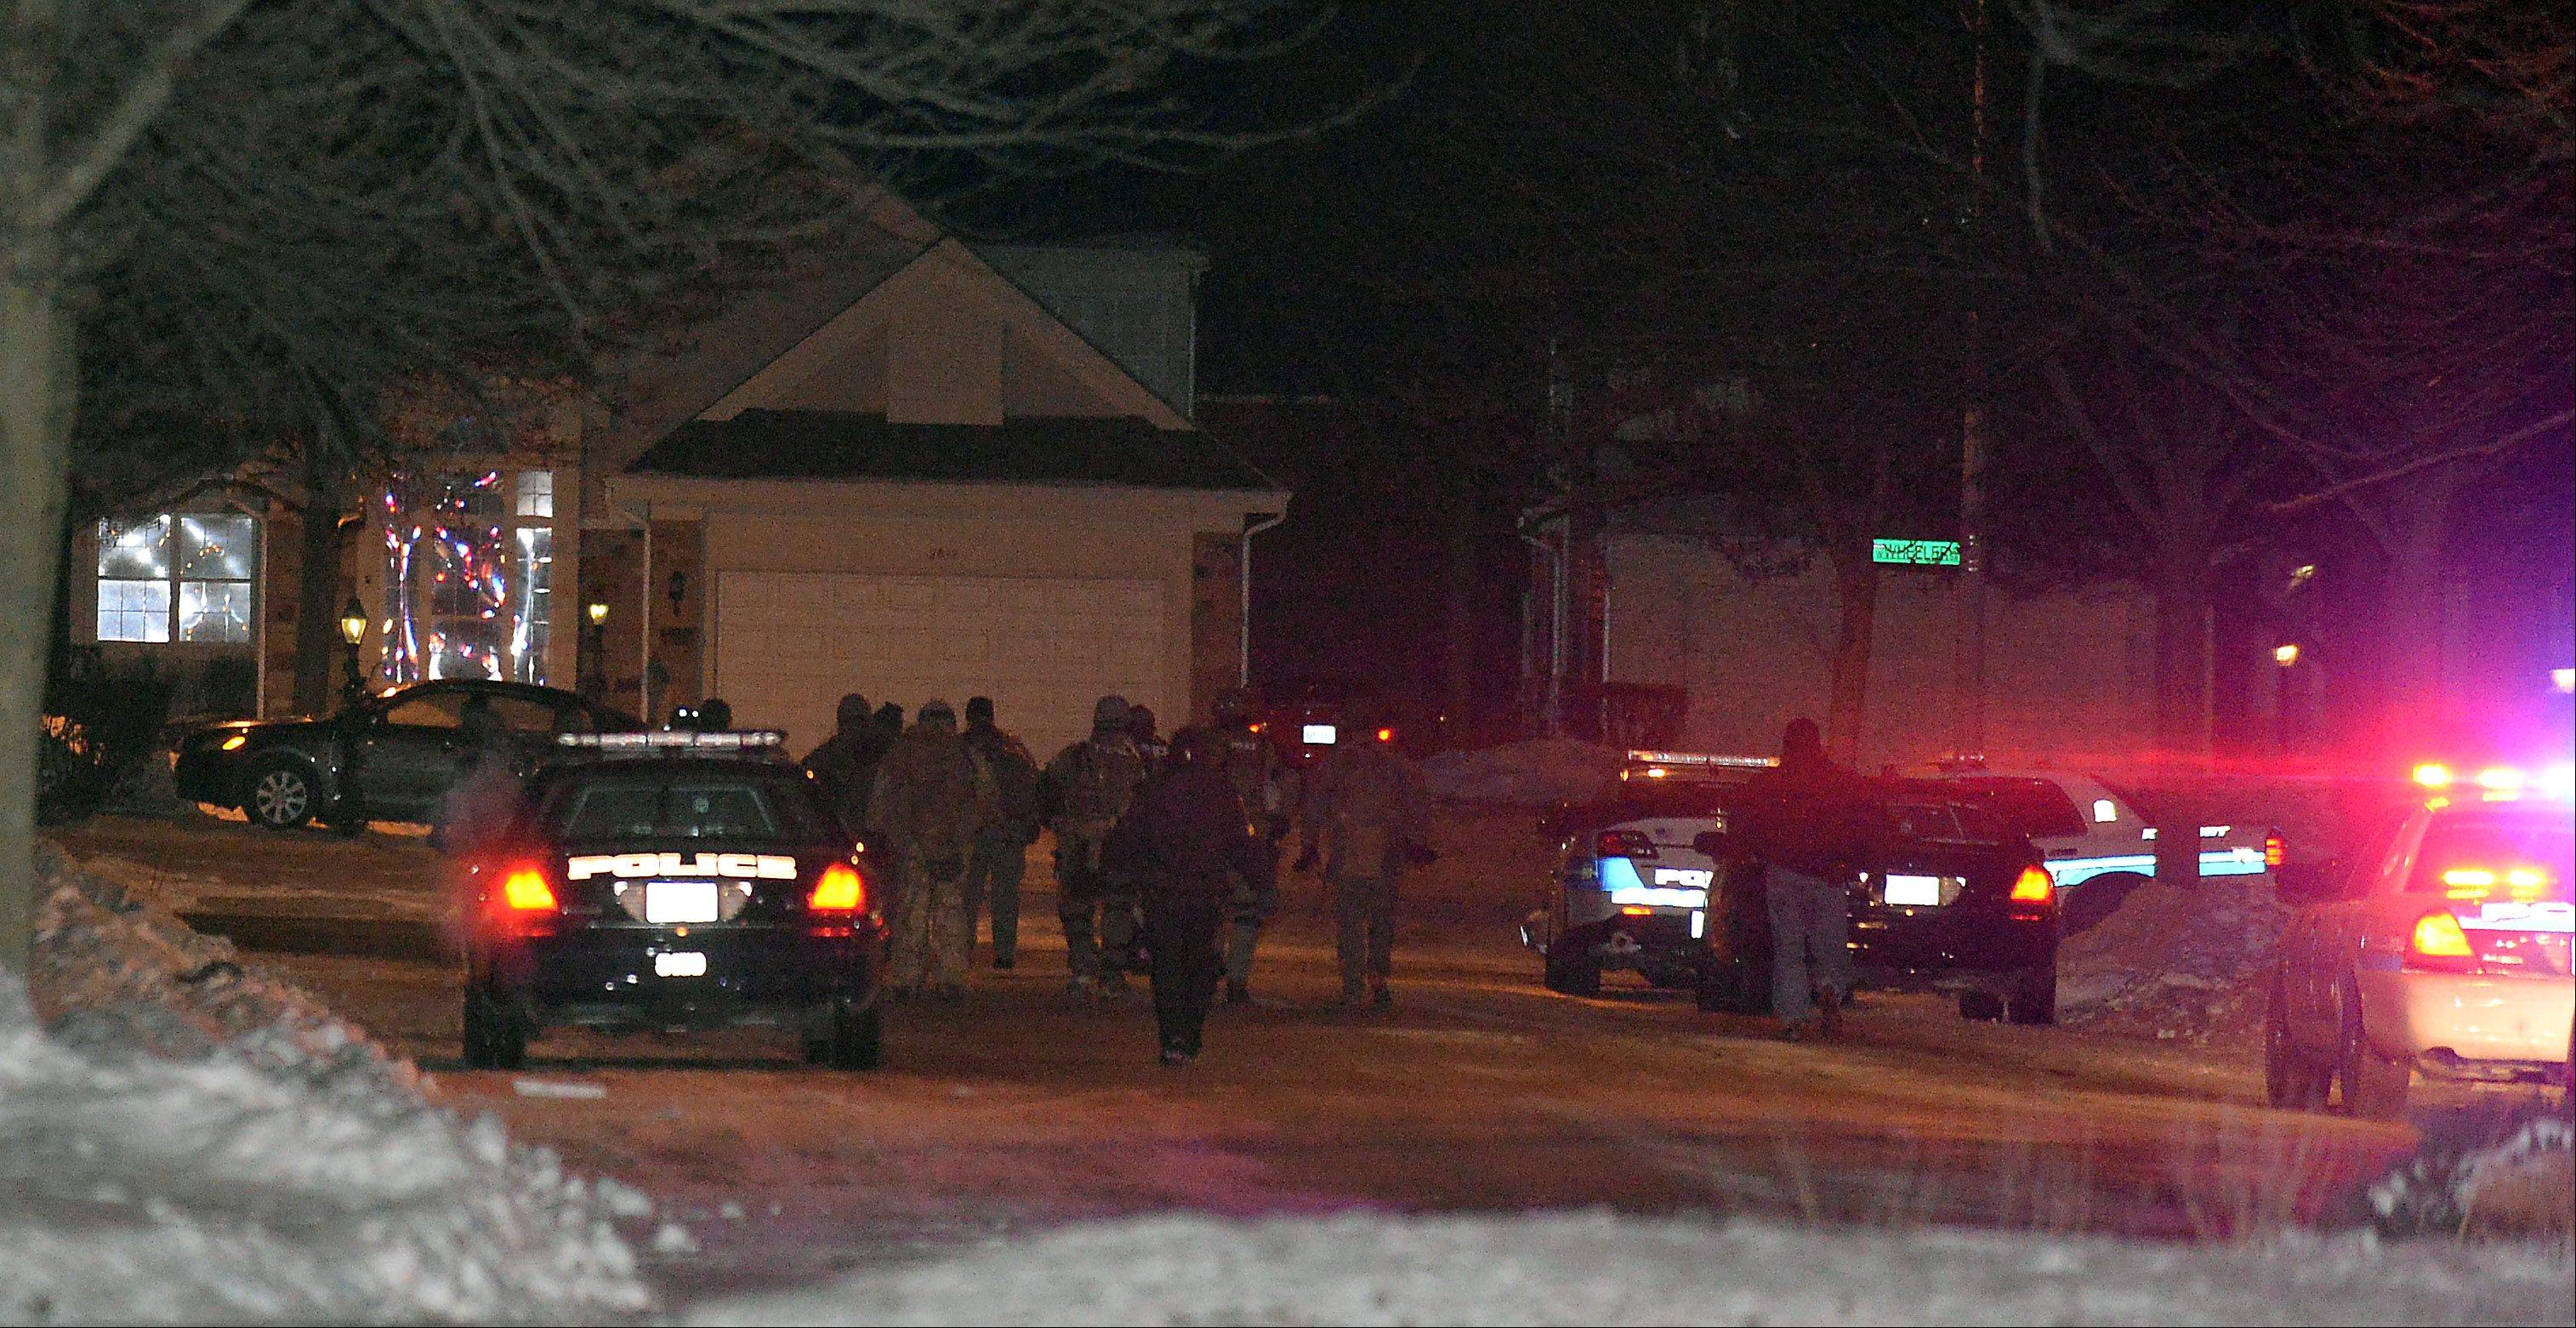 An Arlington Heights police officer was shot Thursday night after responding to a domestic incident. SWAT teams then responded to a hostage situation at the townhouse near Windham Court.$PHOTOCREDIT_ON$Mark Welsh/mwelsh@dailyherald.com$PHOTOCREDIT_OFF$